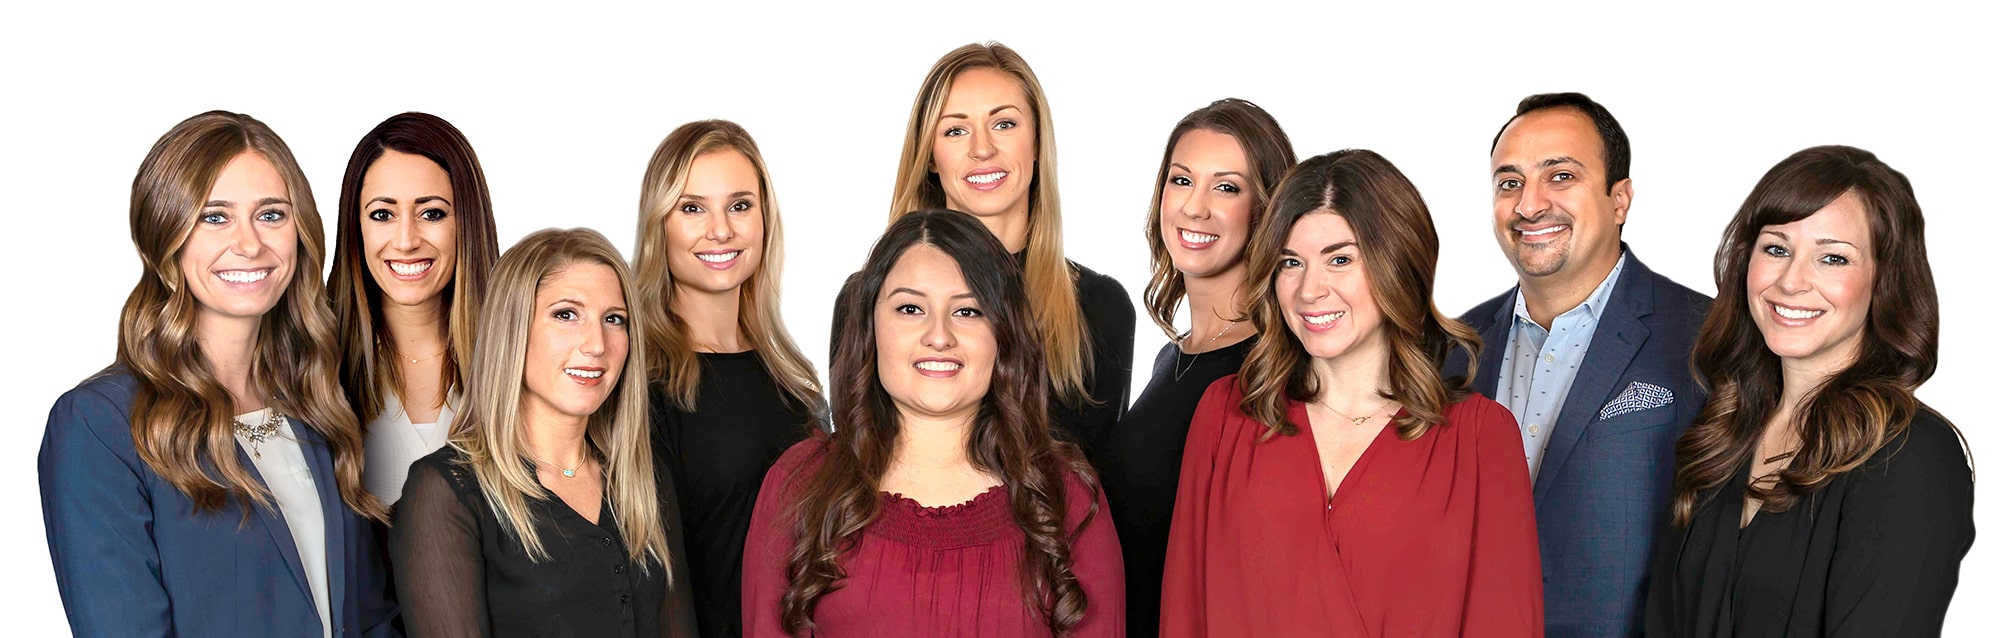 The team and dentists at Impressive Smiles in Arlington Heights, IL